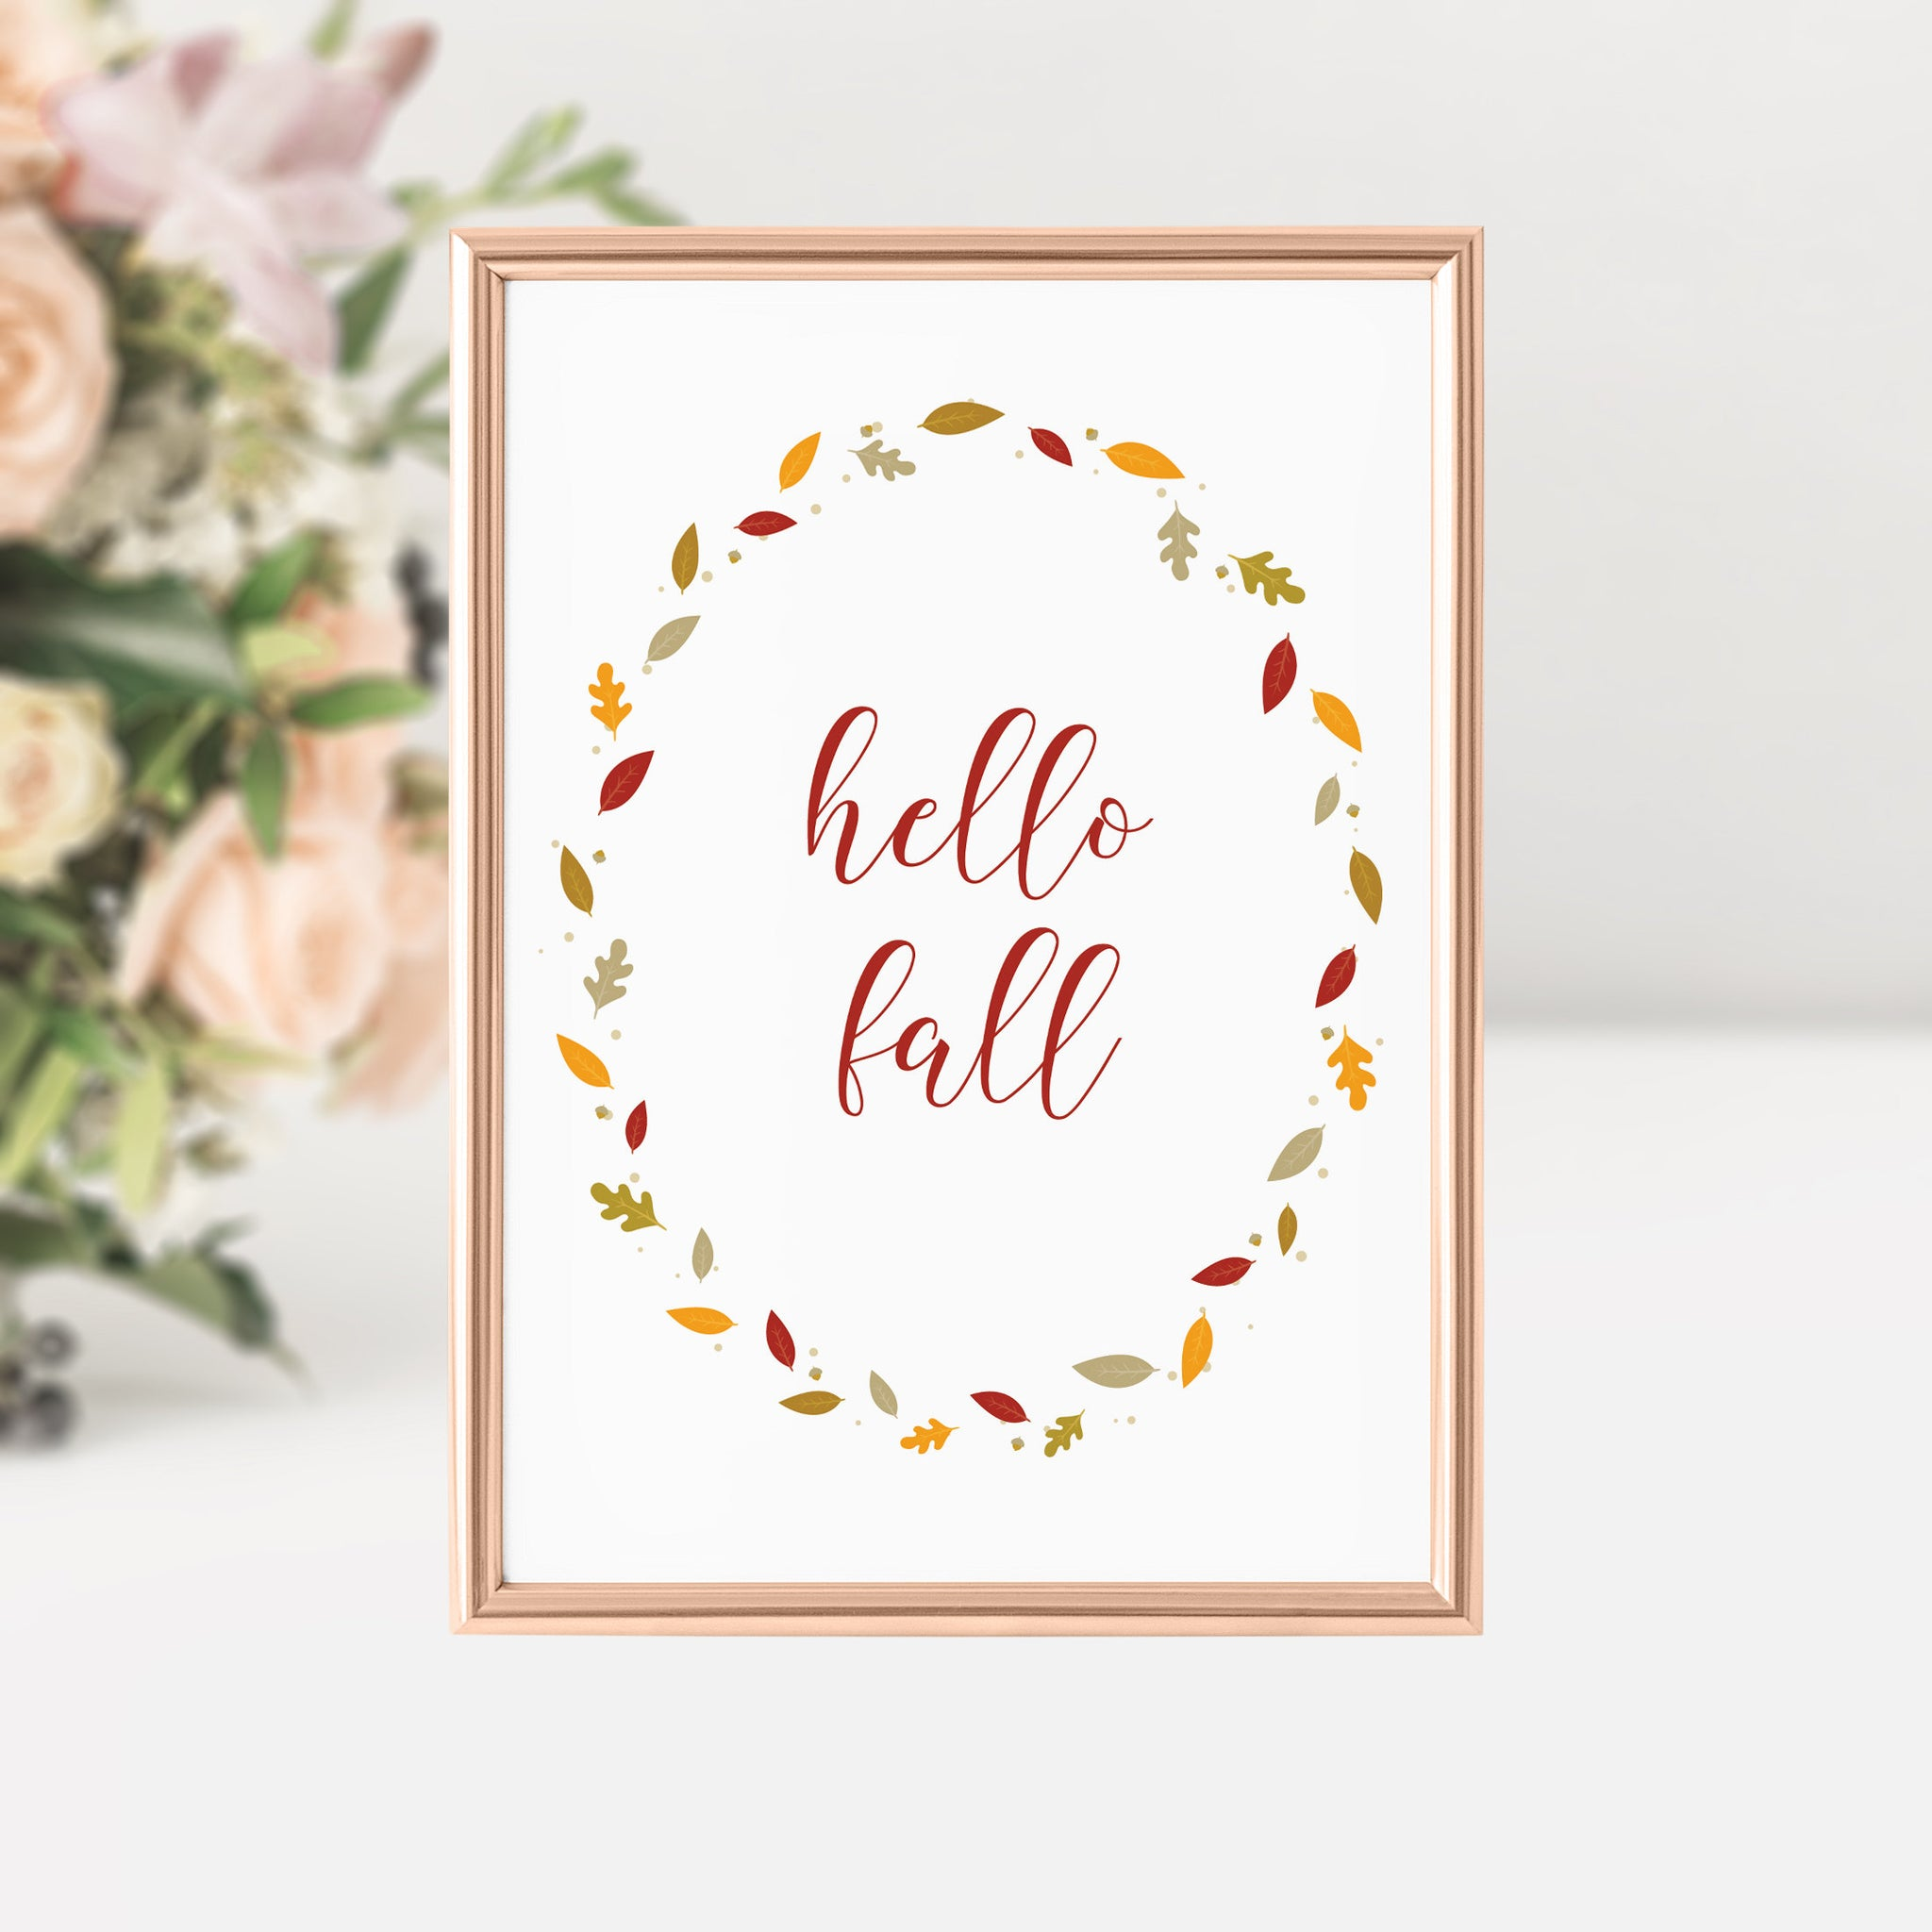 Hello Fall Sign, Hello Fall Printable, Fall Decor Leaves, Fall Decorations for Home, Fall Printable Art, INSTANT DOWNLOAD - FL100